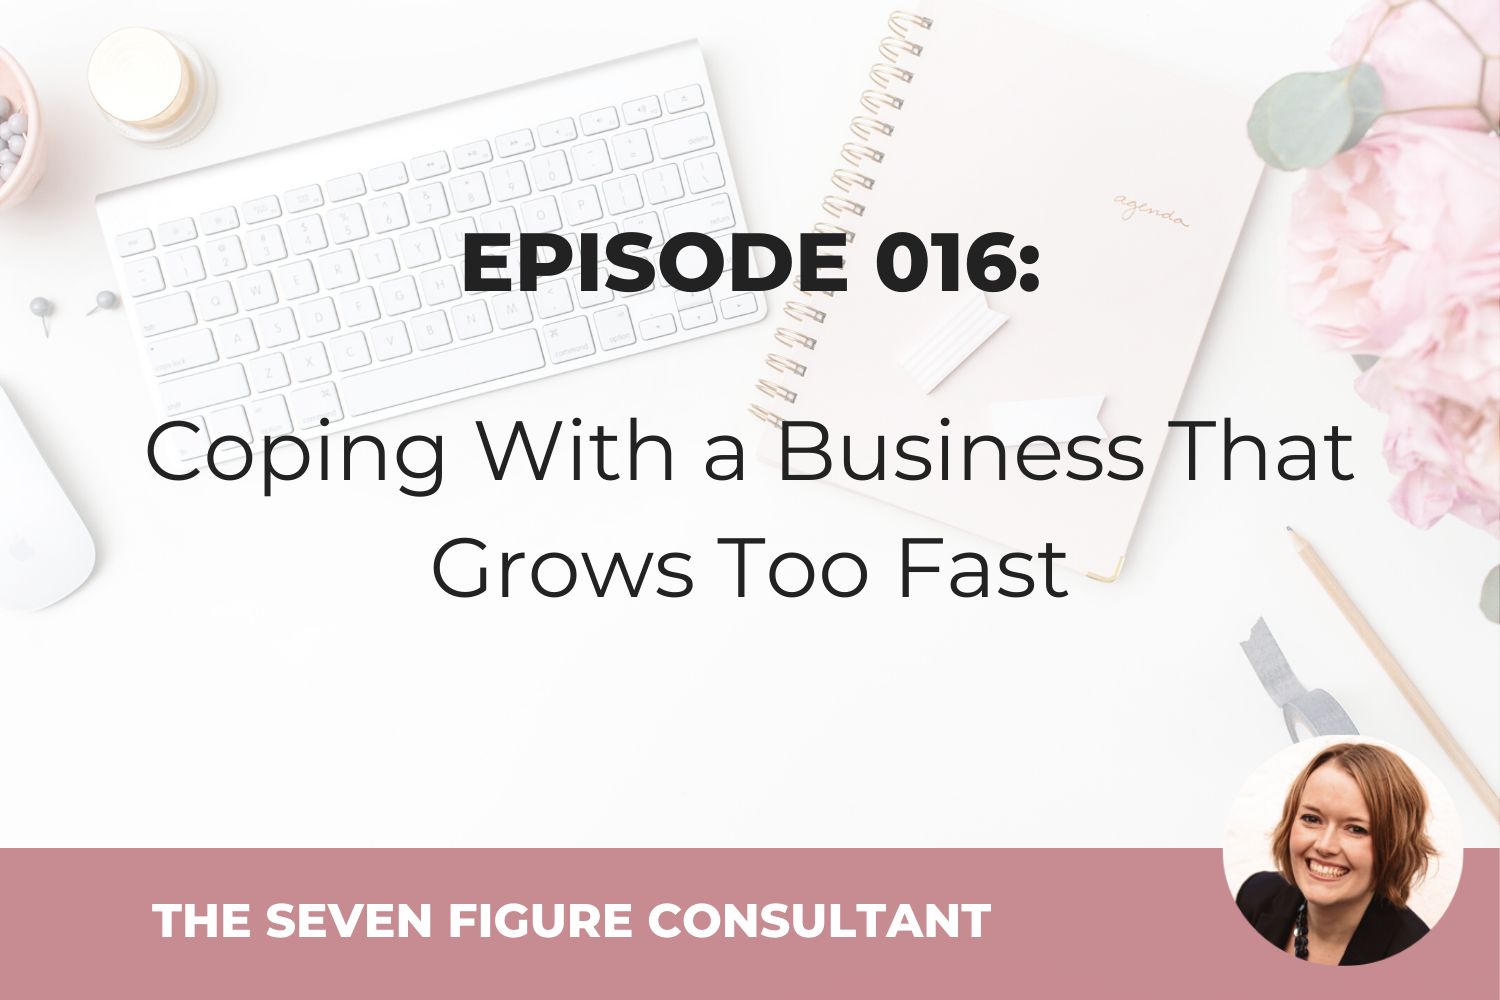 Episode 016: Coping With a Business That Grows Too Fast